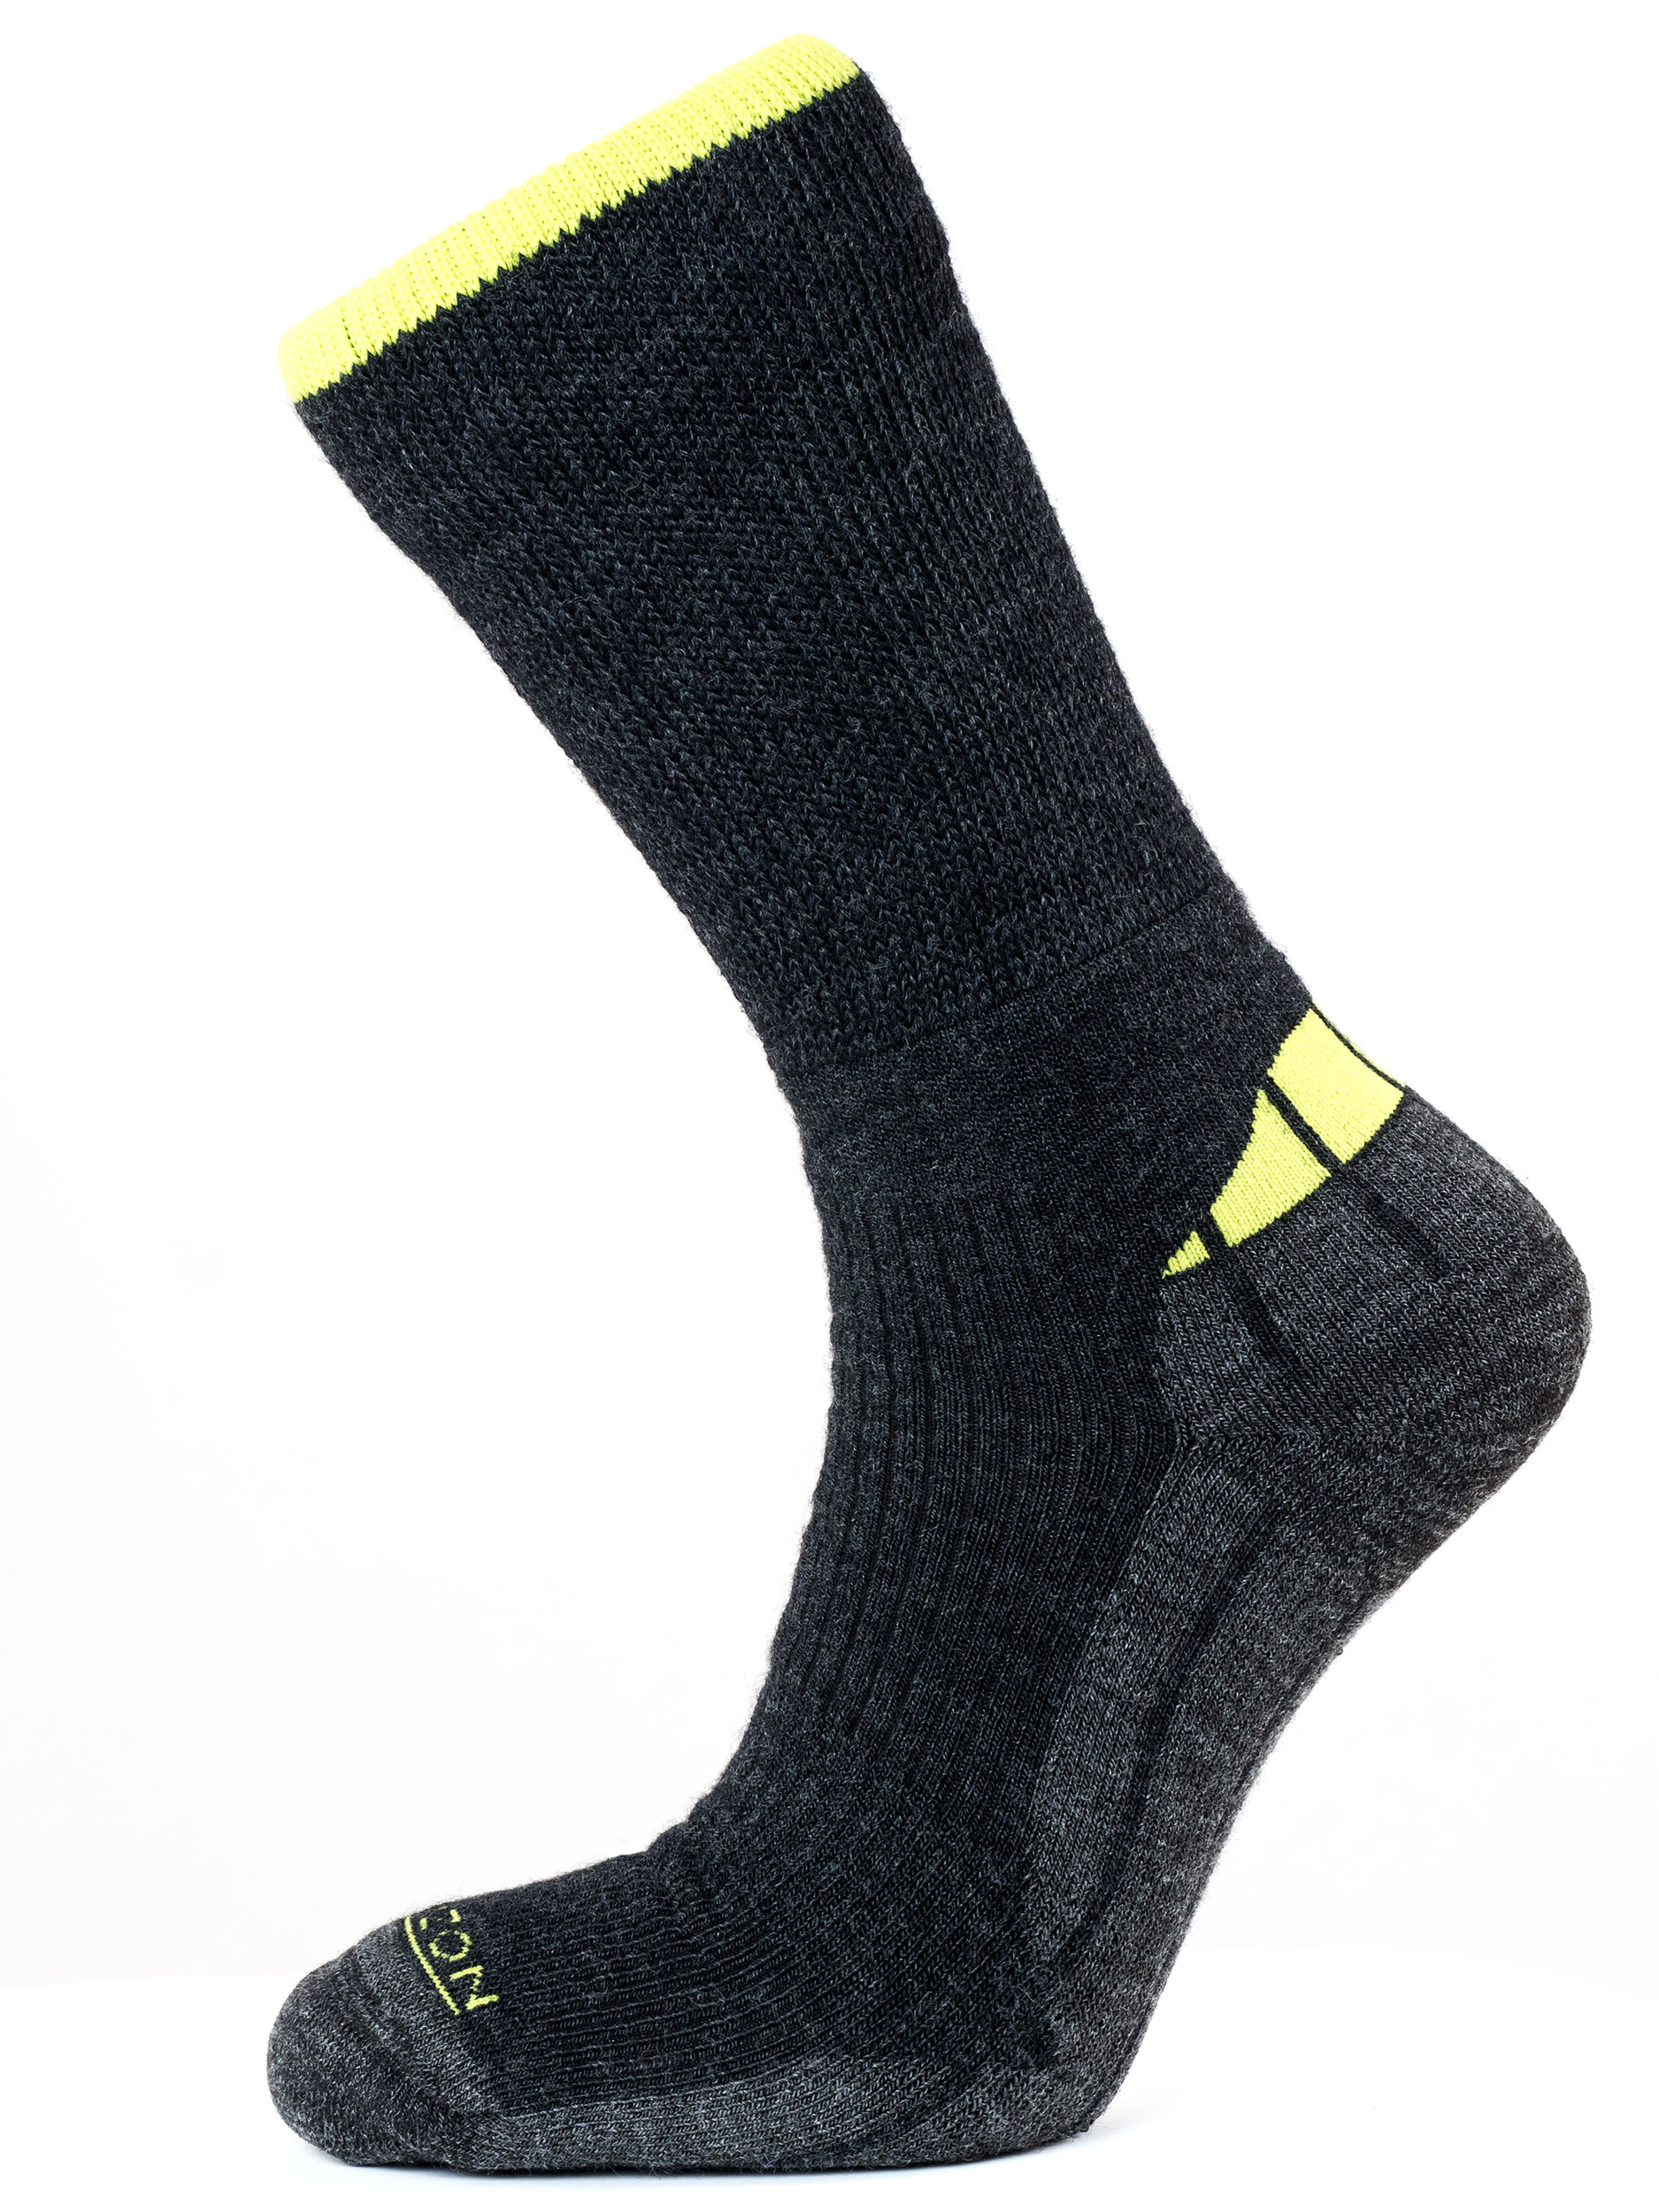 Merino Hiker Charcoal/Lime